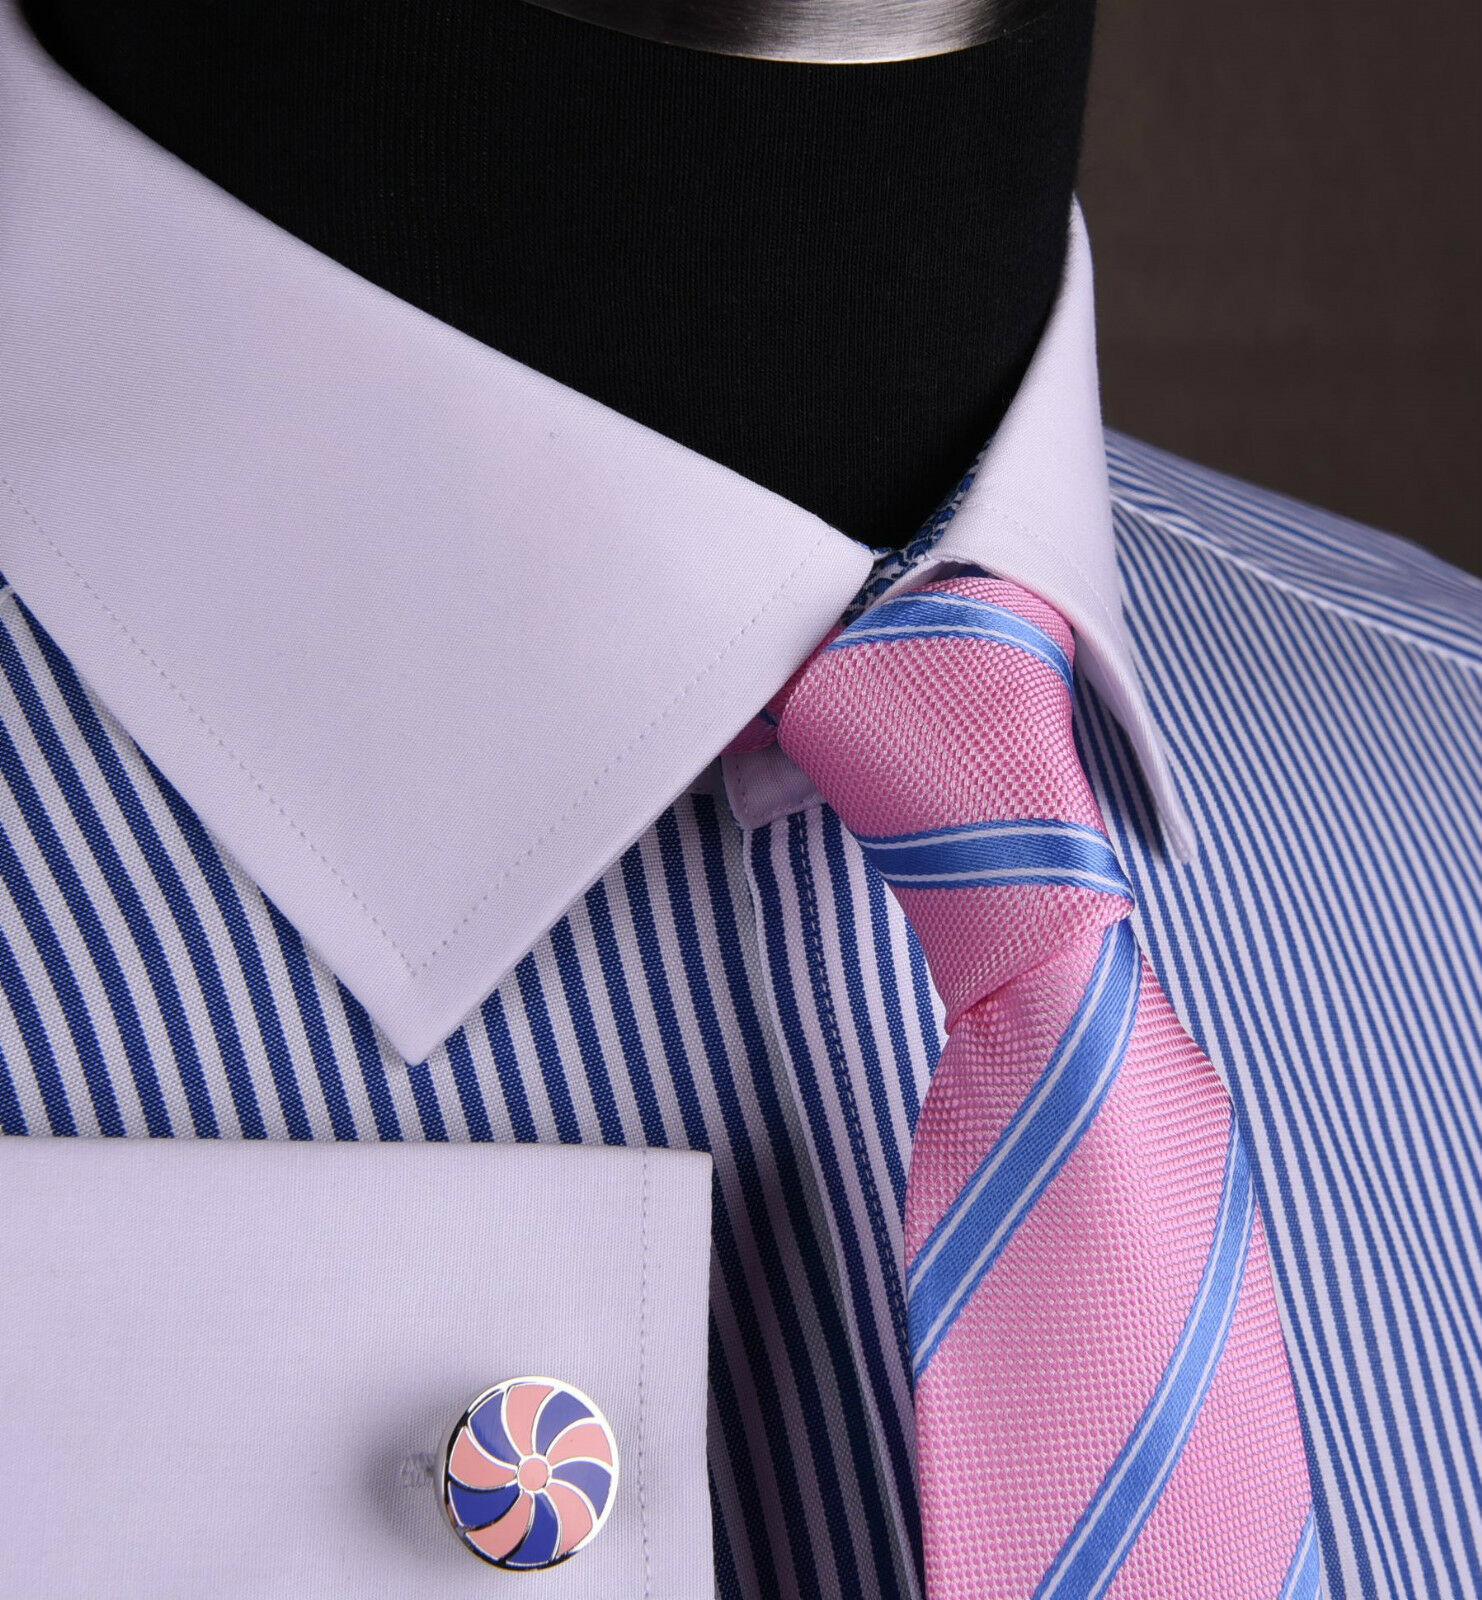 Royal bluee Oxford Thin Stripes Business Formal Dress Shirt Contrast French Cuffs